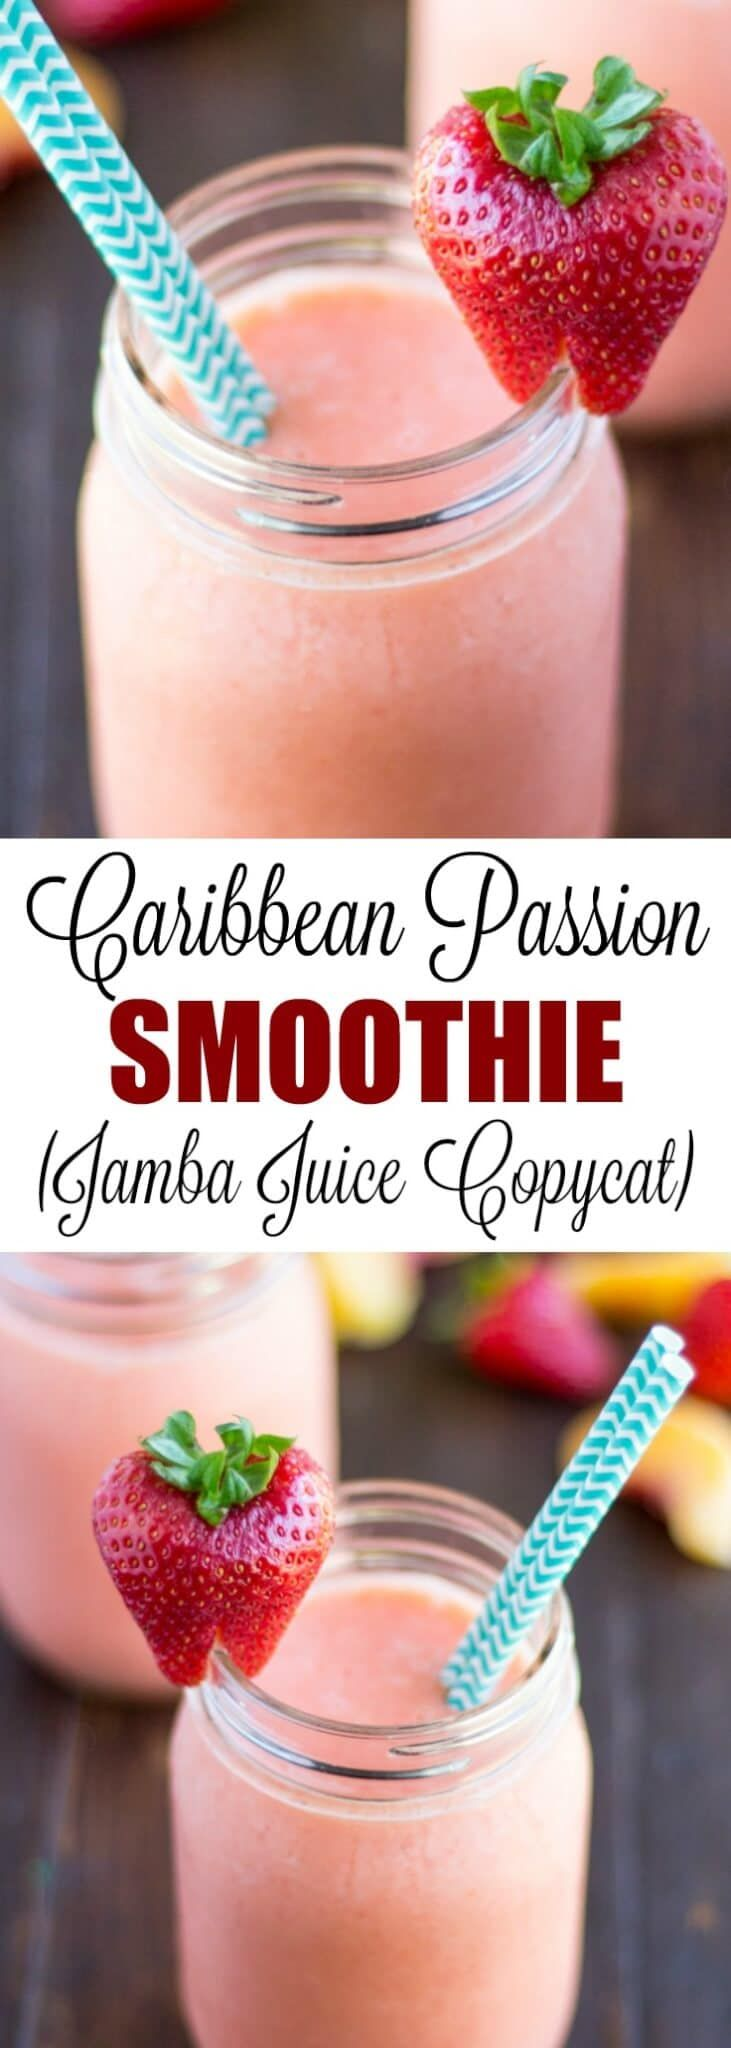 This Caribbean Passion Smoothie Recipe is a copycat of the popular Jamba Juice version: Fruity and delicious perfection!